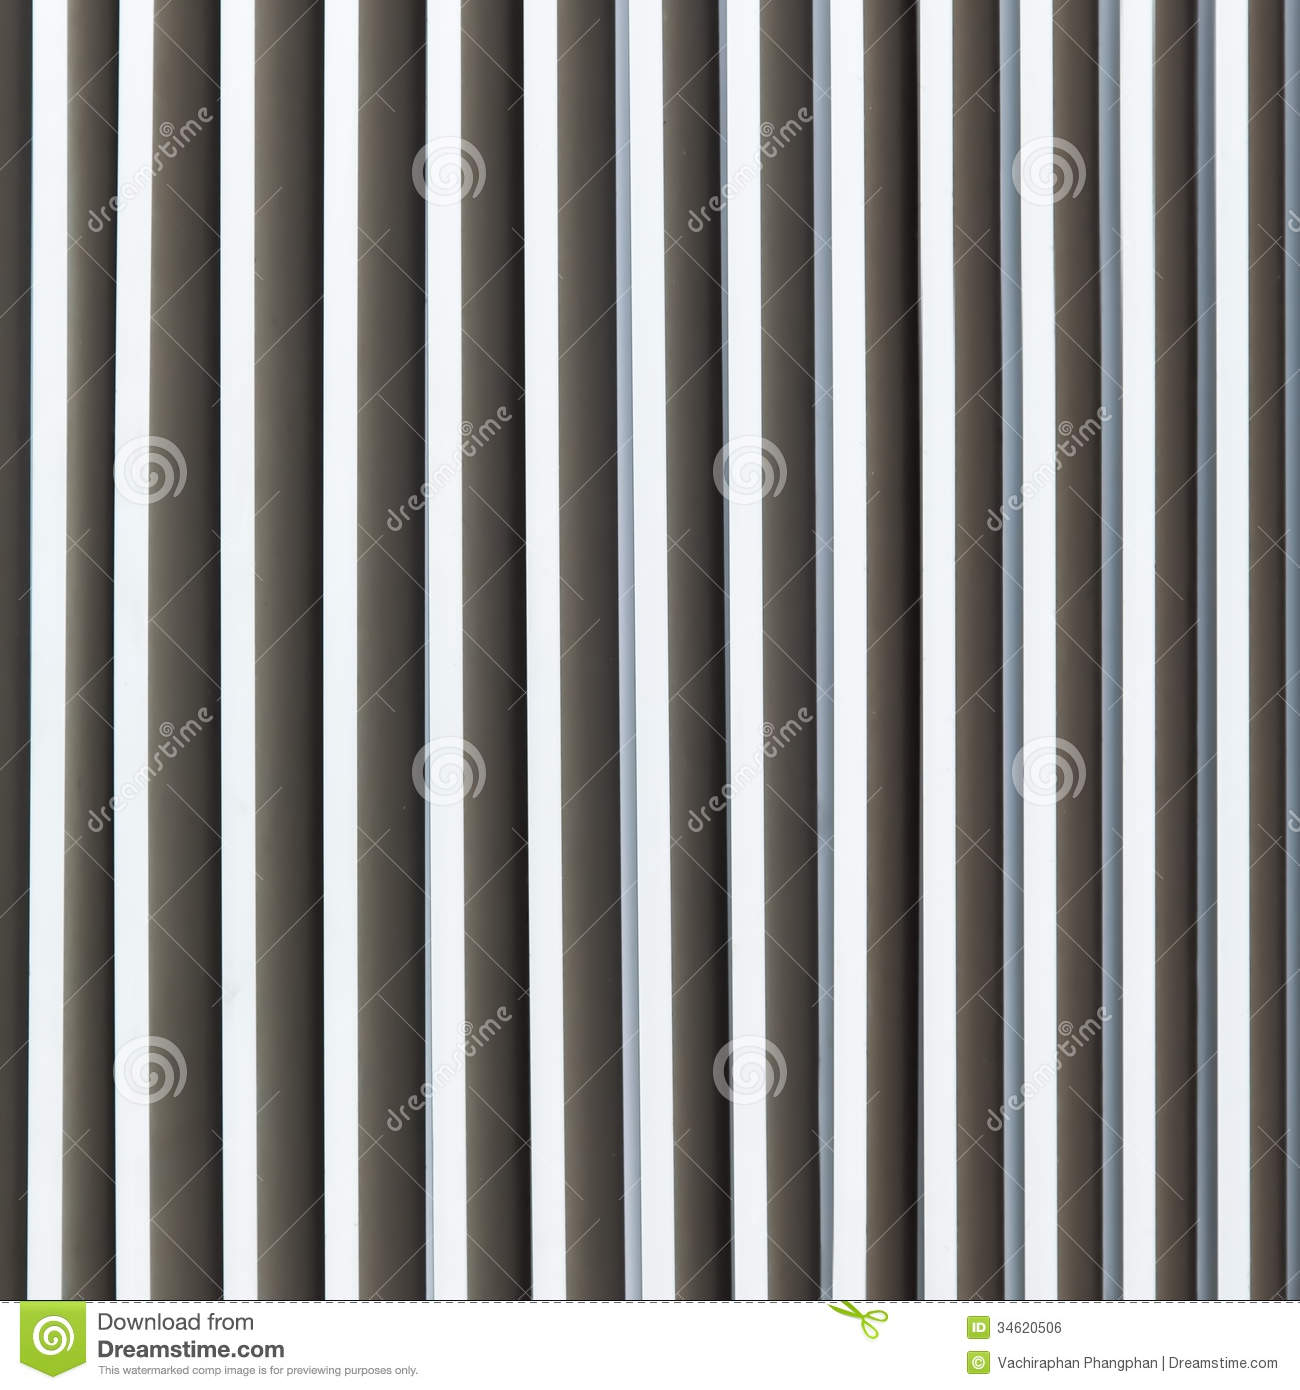 Louver window royalty free stock image image 34620506 for Window material